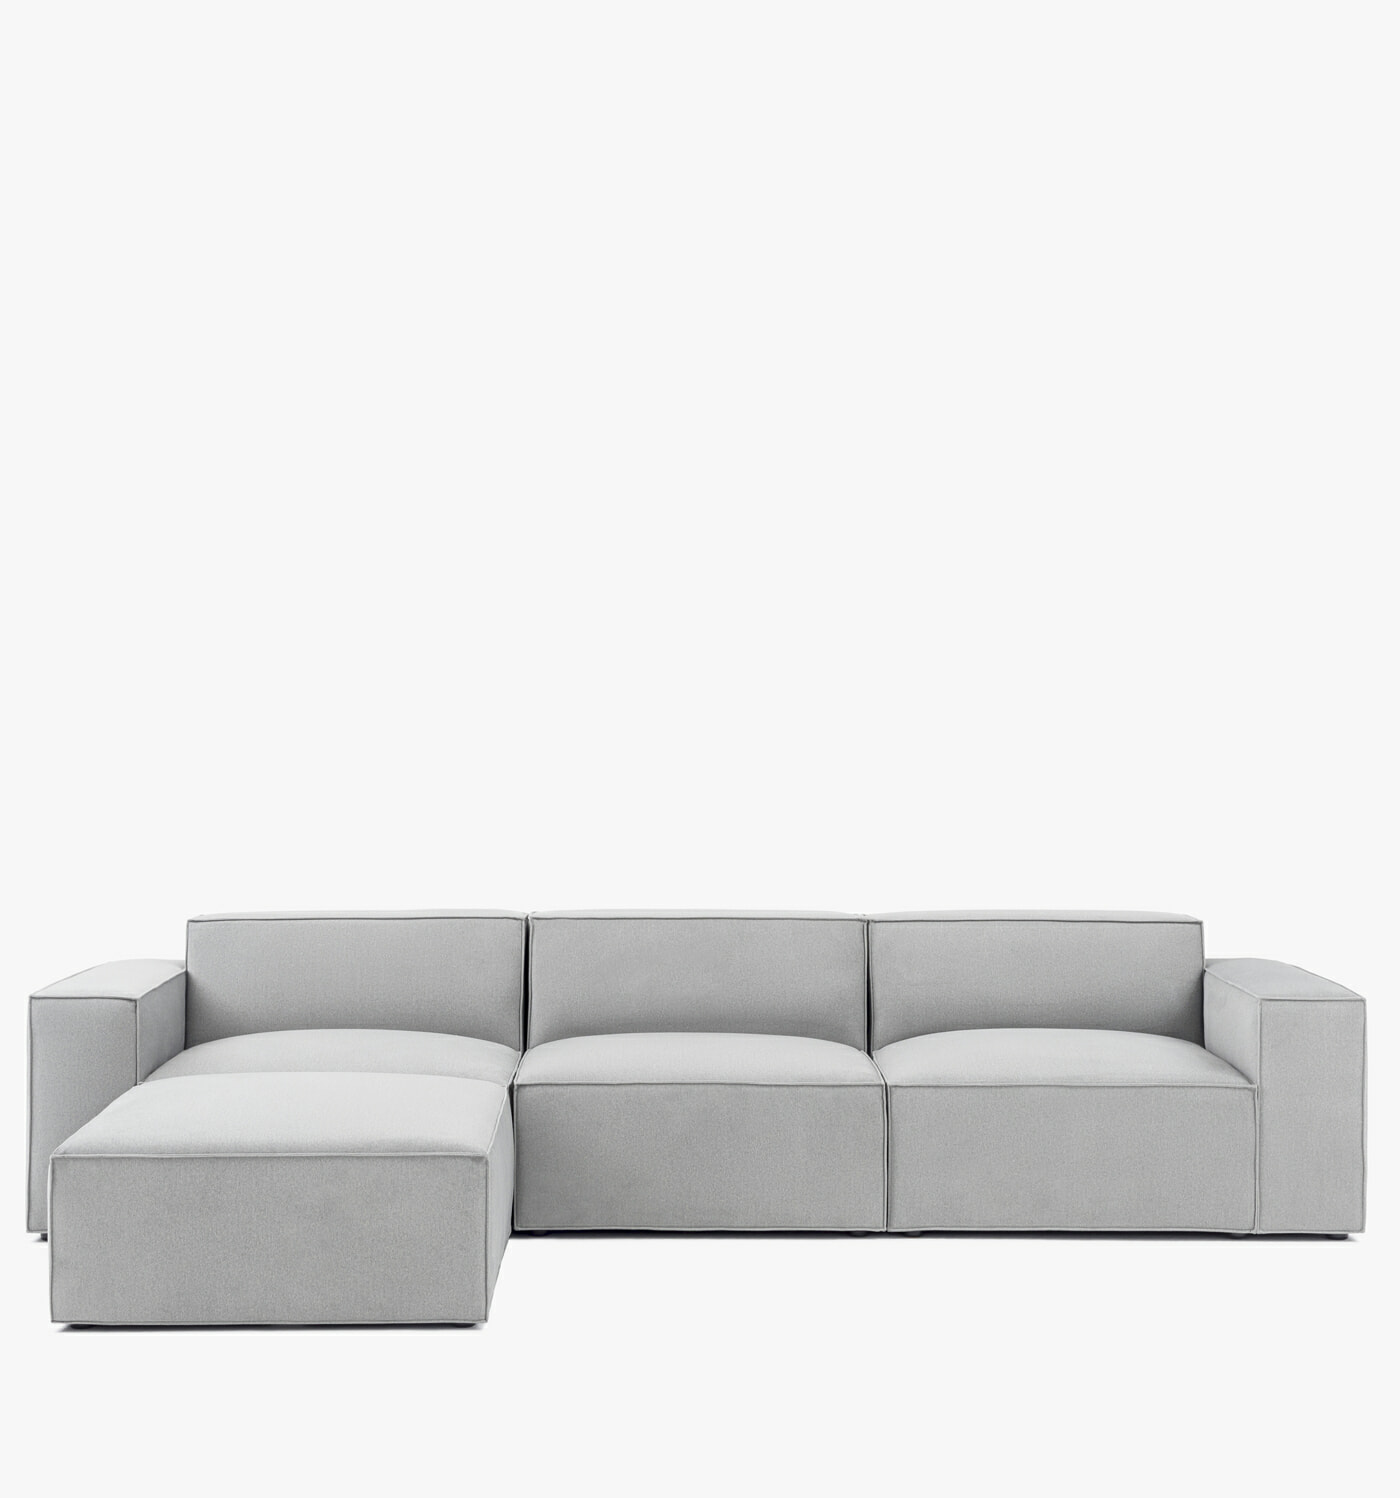 Pacific sectional